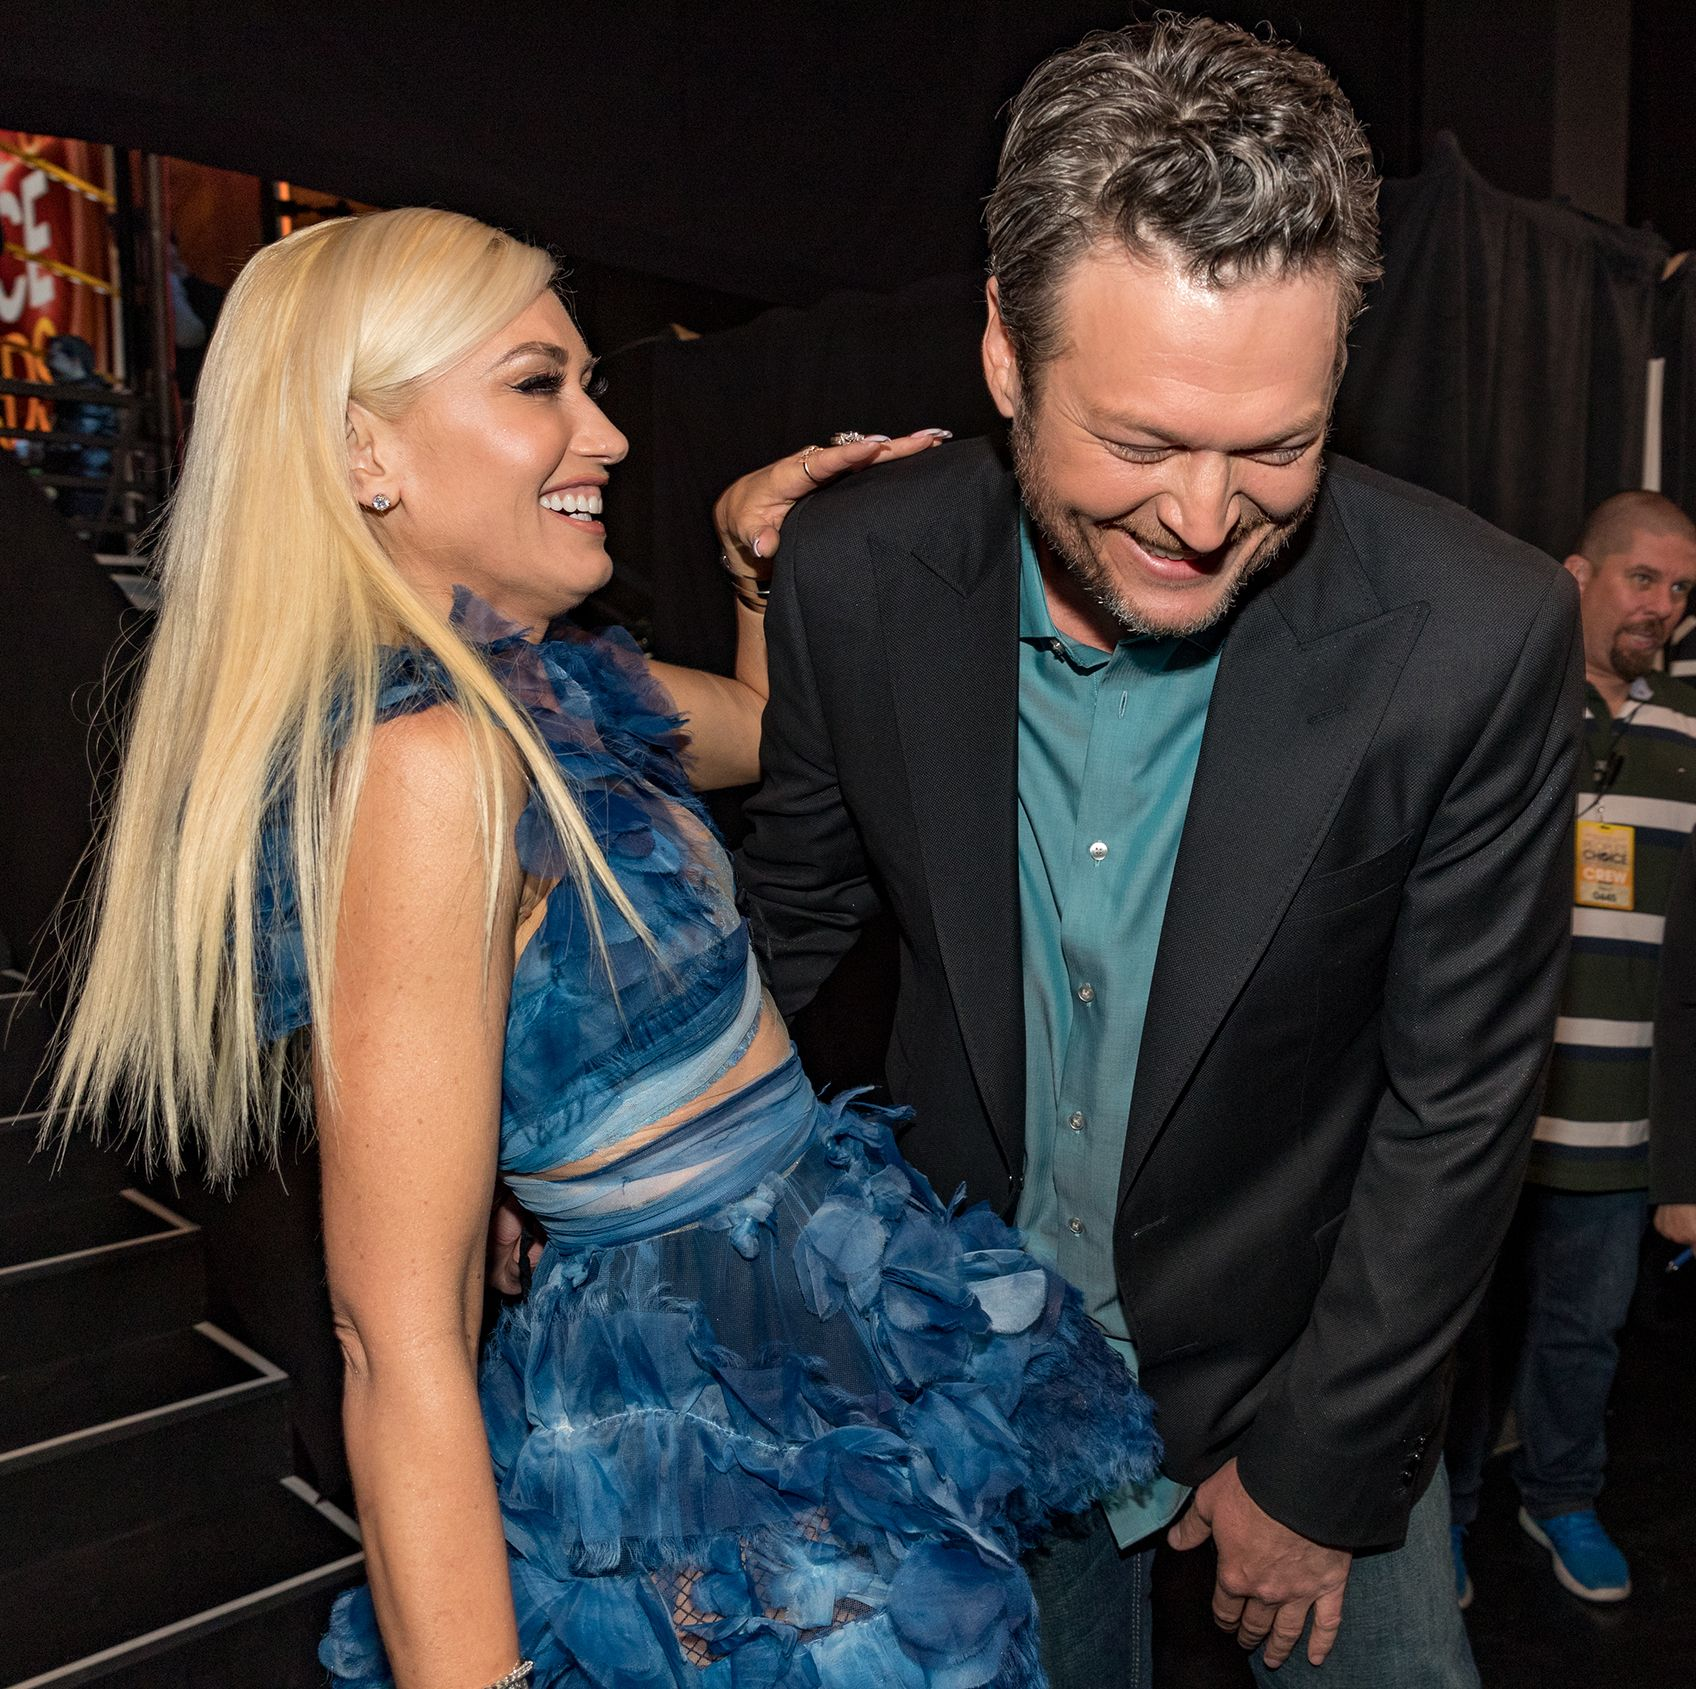 Feast Your Eyes on This Unbelievable Throwback Photo Gwen Stefani Found of Blake Shelton